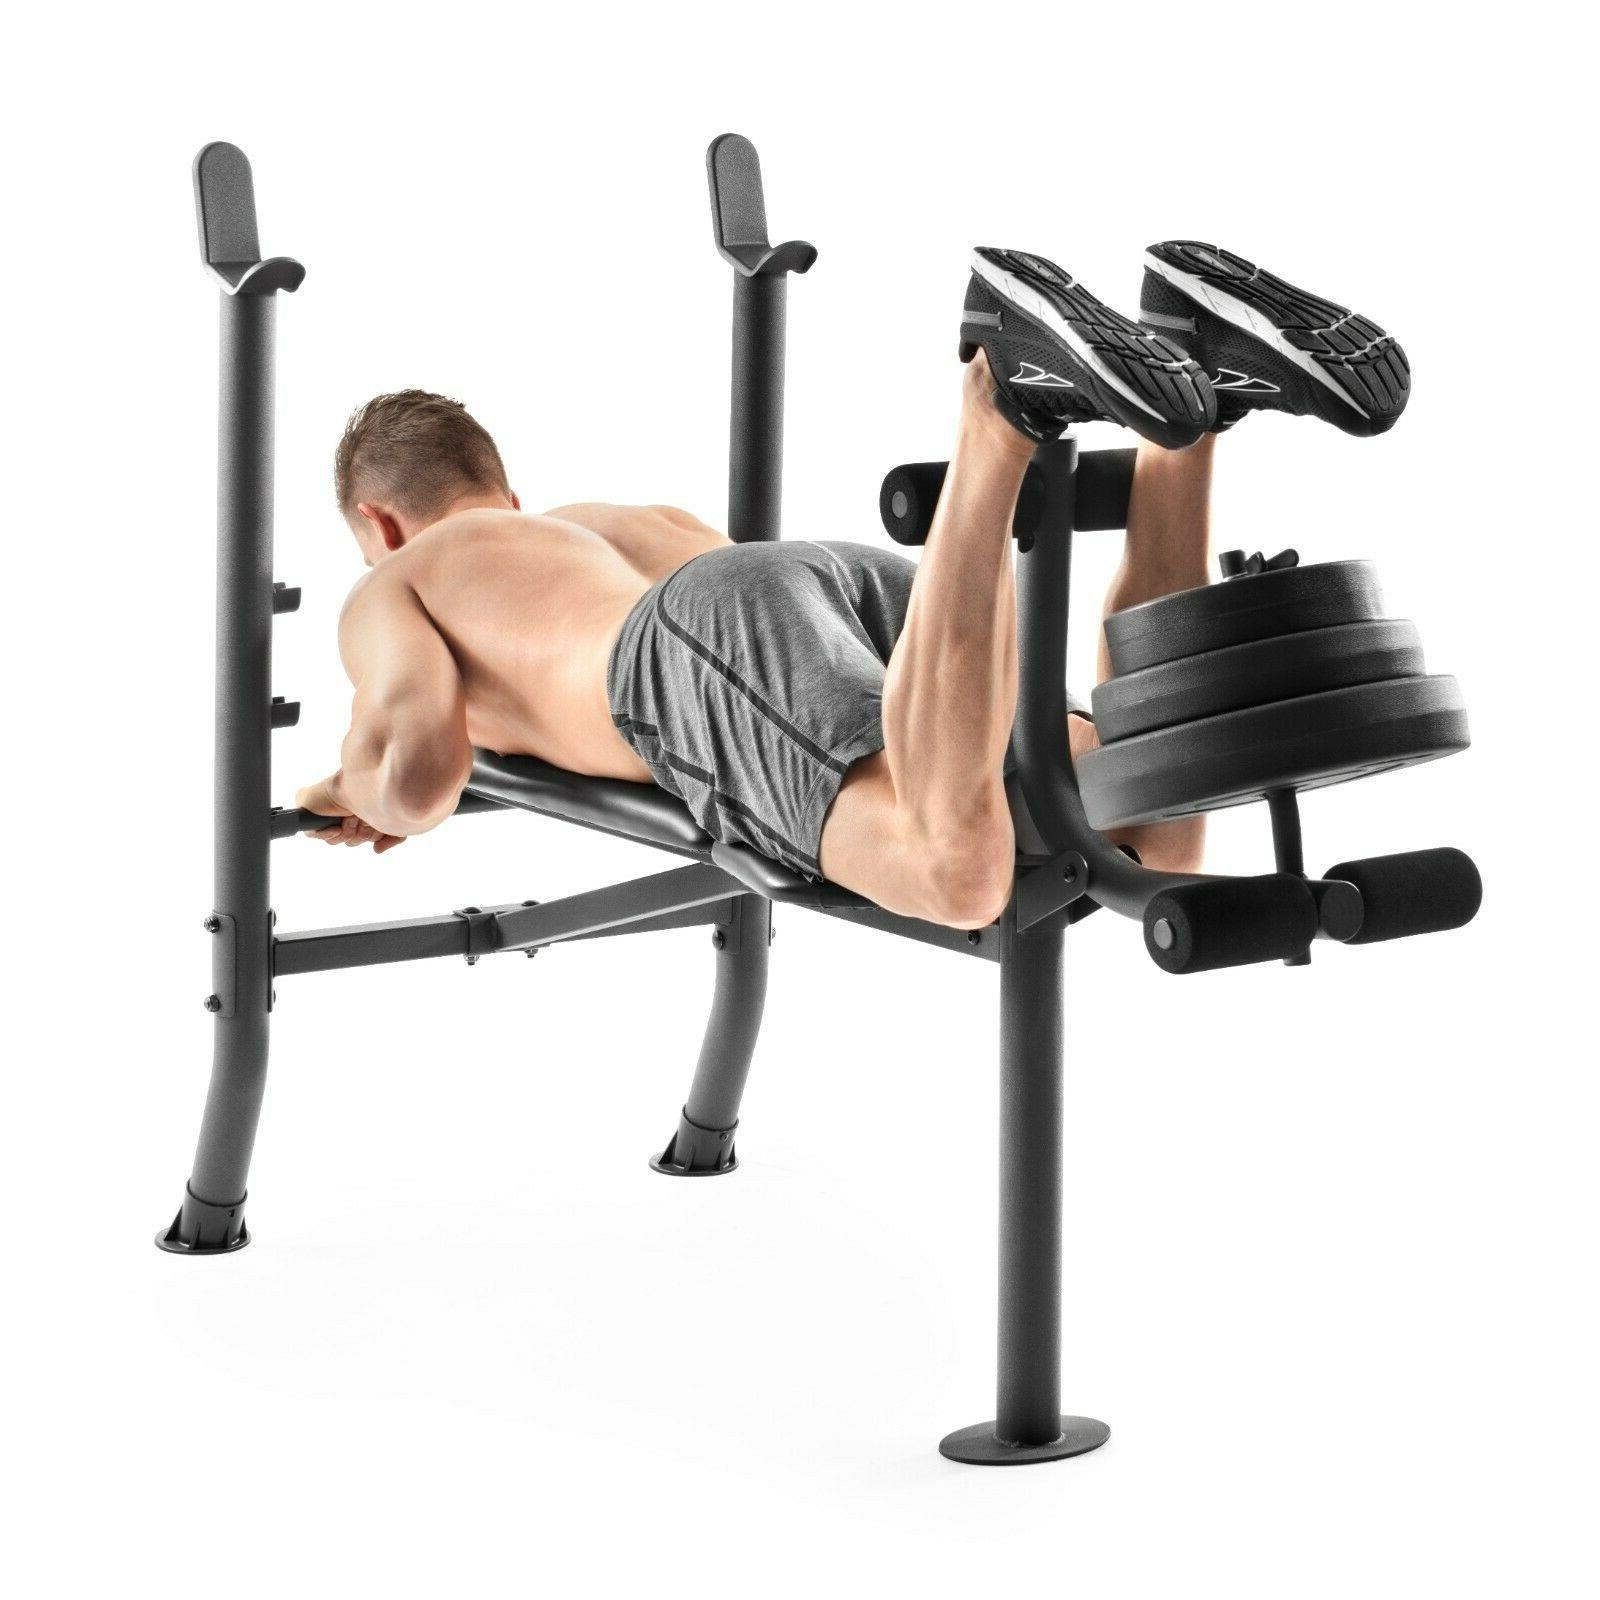 Fitness Bench Set Equipment Home Workout